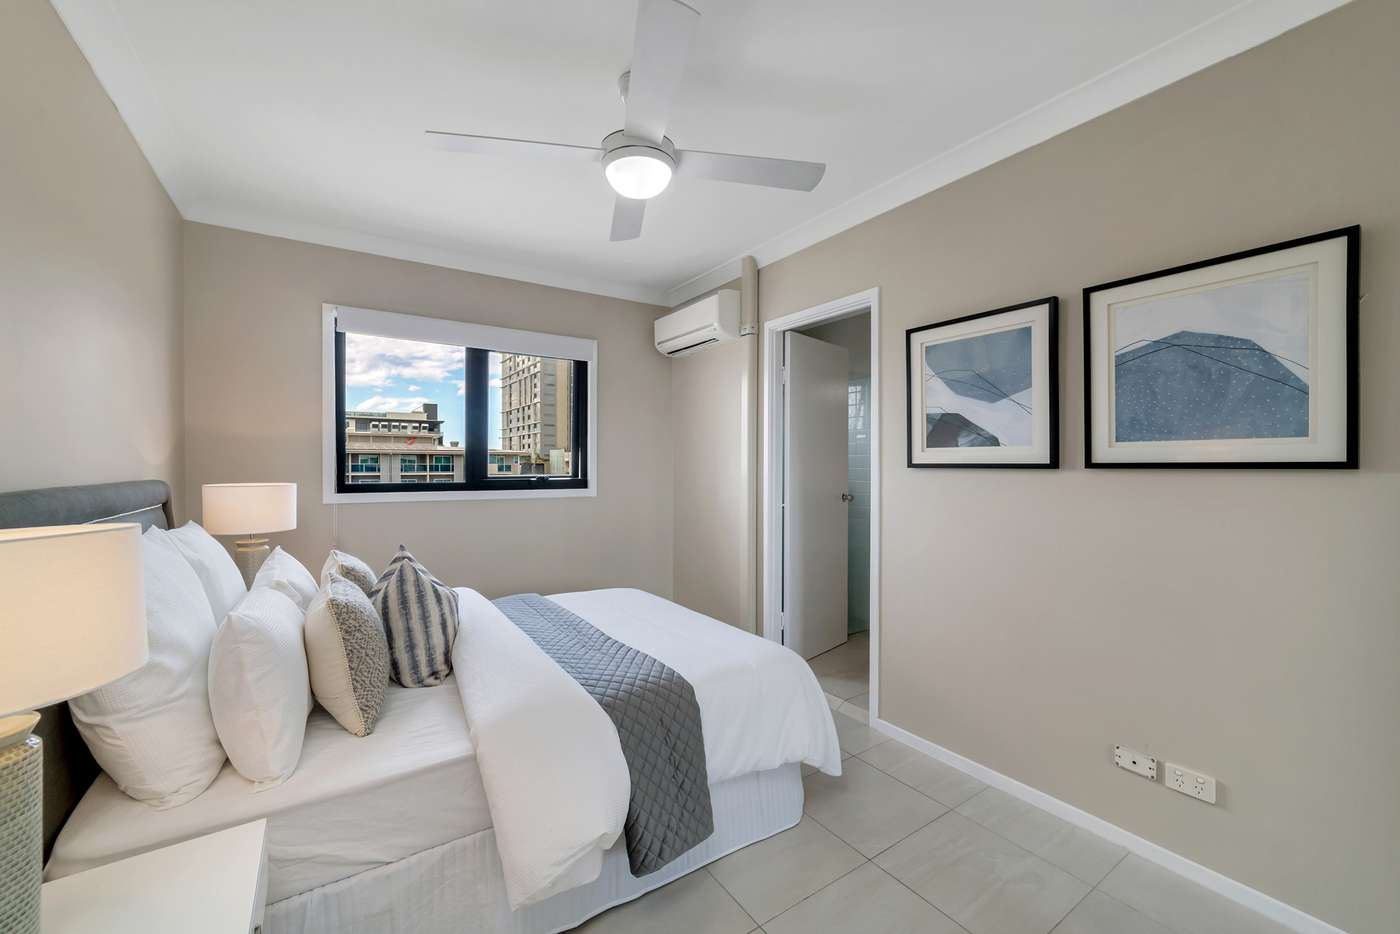 Sixth view of Homely unit listing, 37/60 Sherwood Road, Toowong QLD 4066